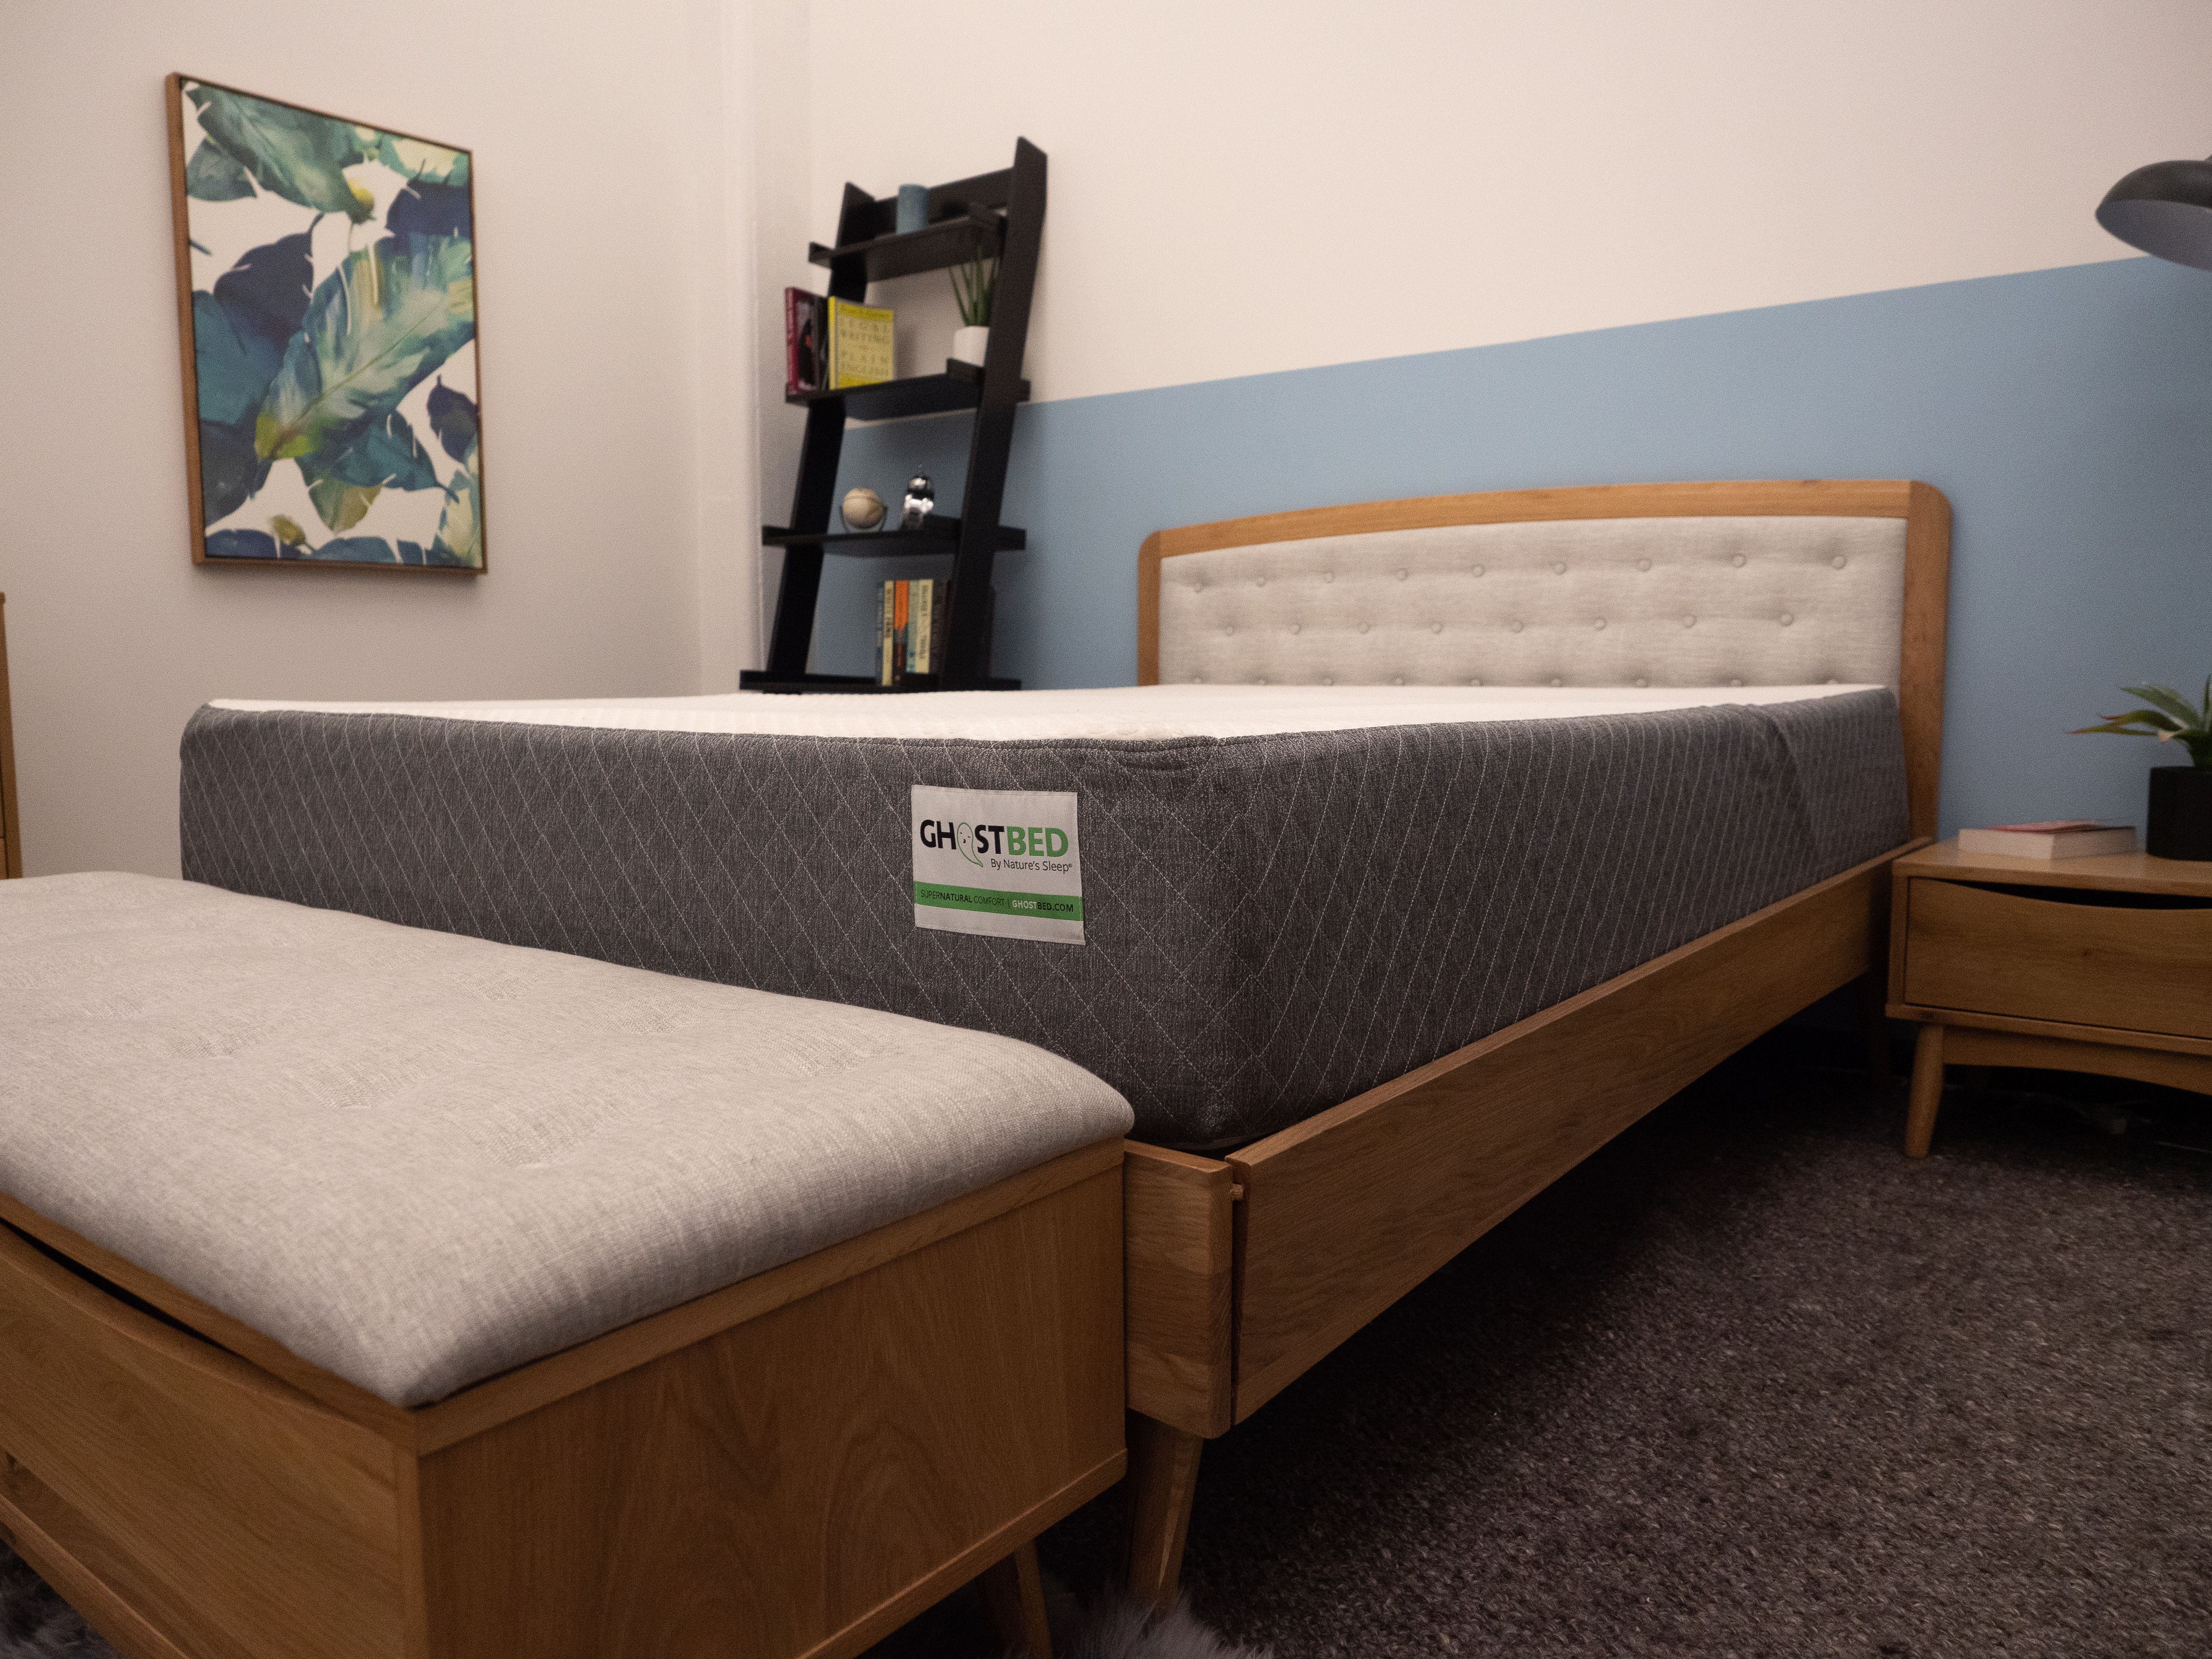 Ghostbed-Mattress Best Mattress for Heavy People